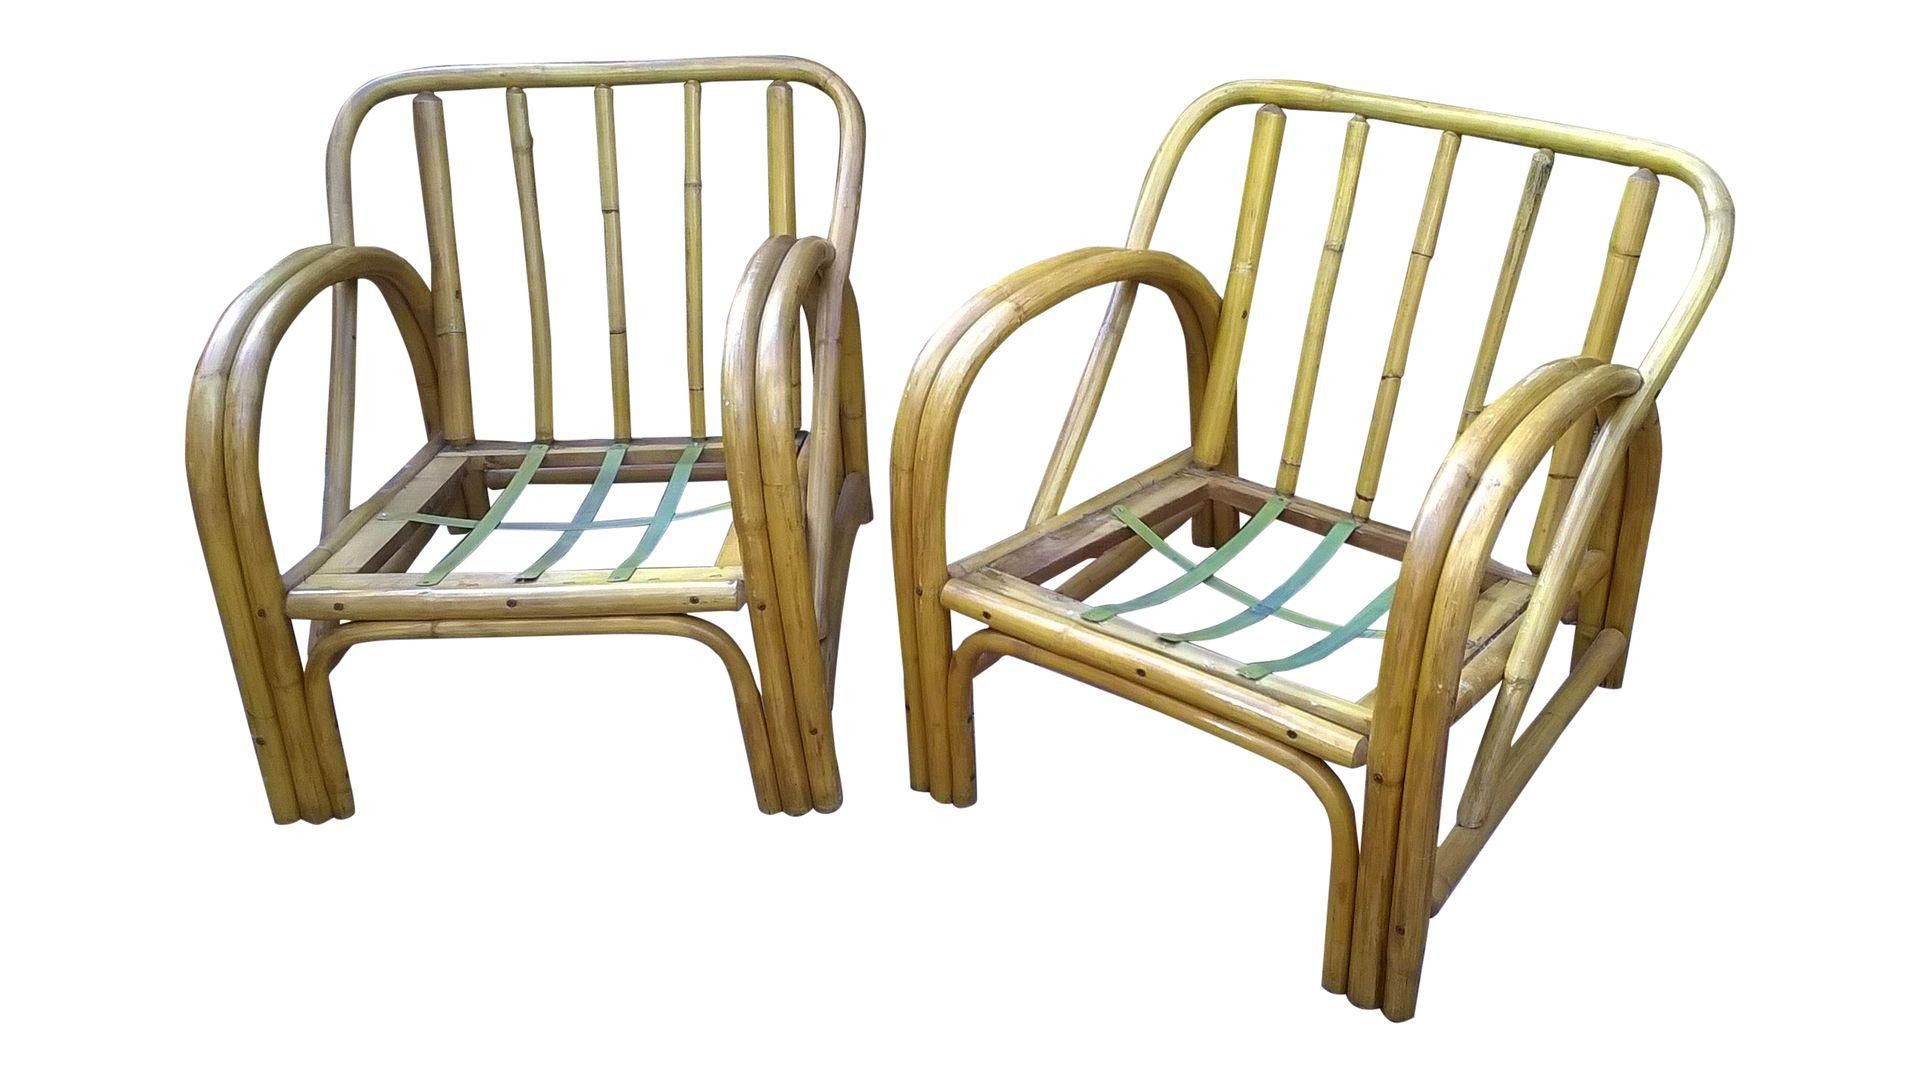 bedroom outdoors sale chair dining imports one pier set chairs random rattan wicker white furniture